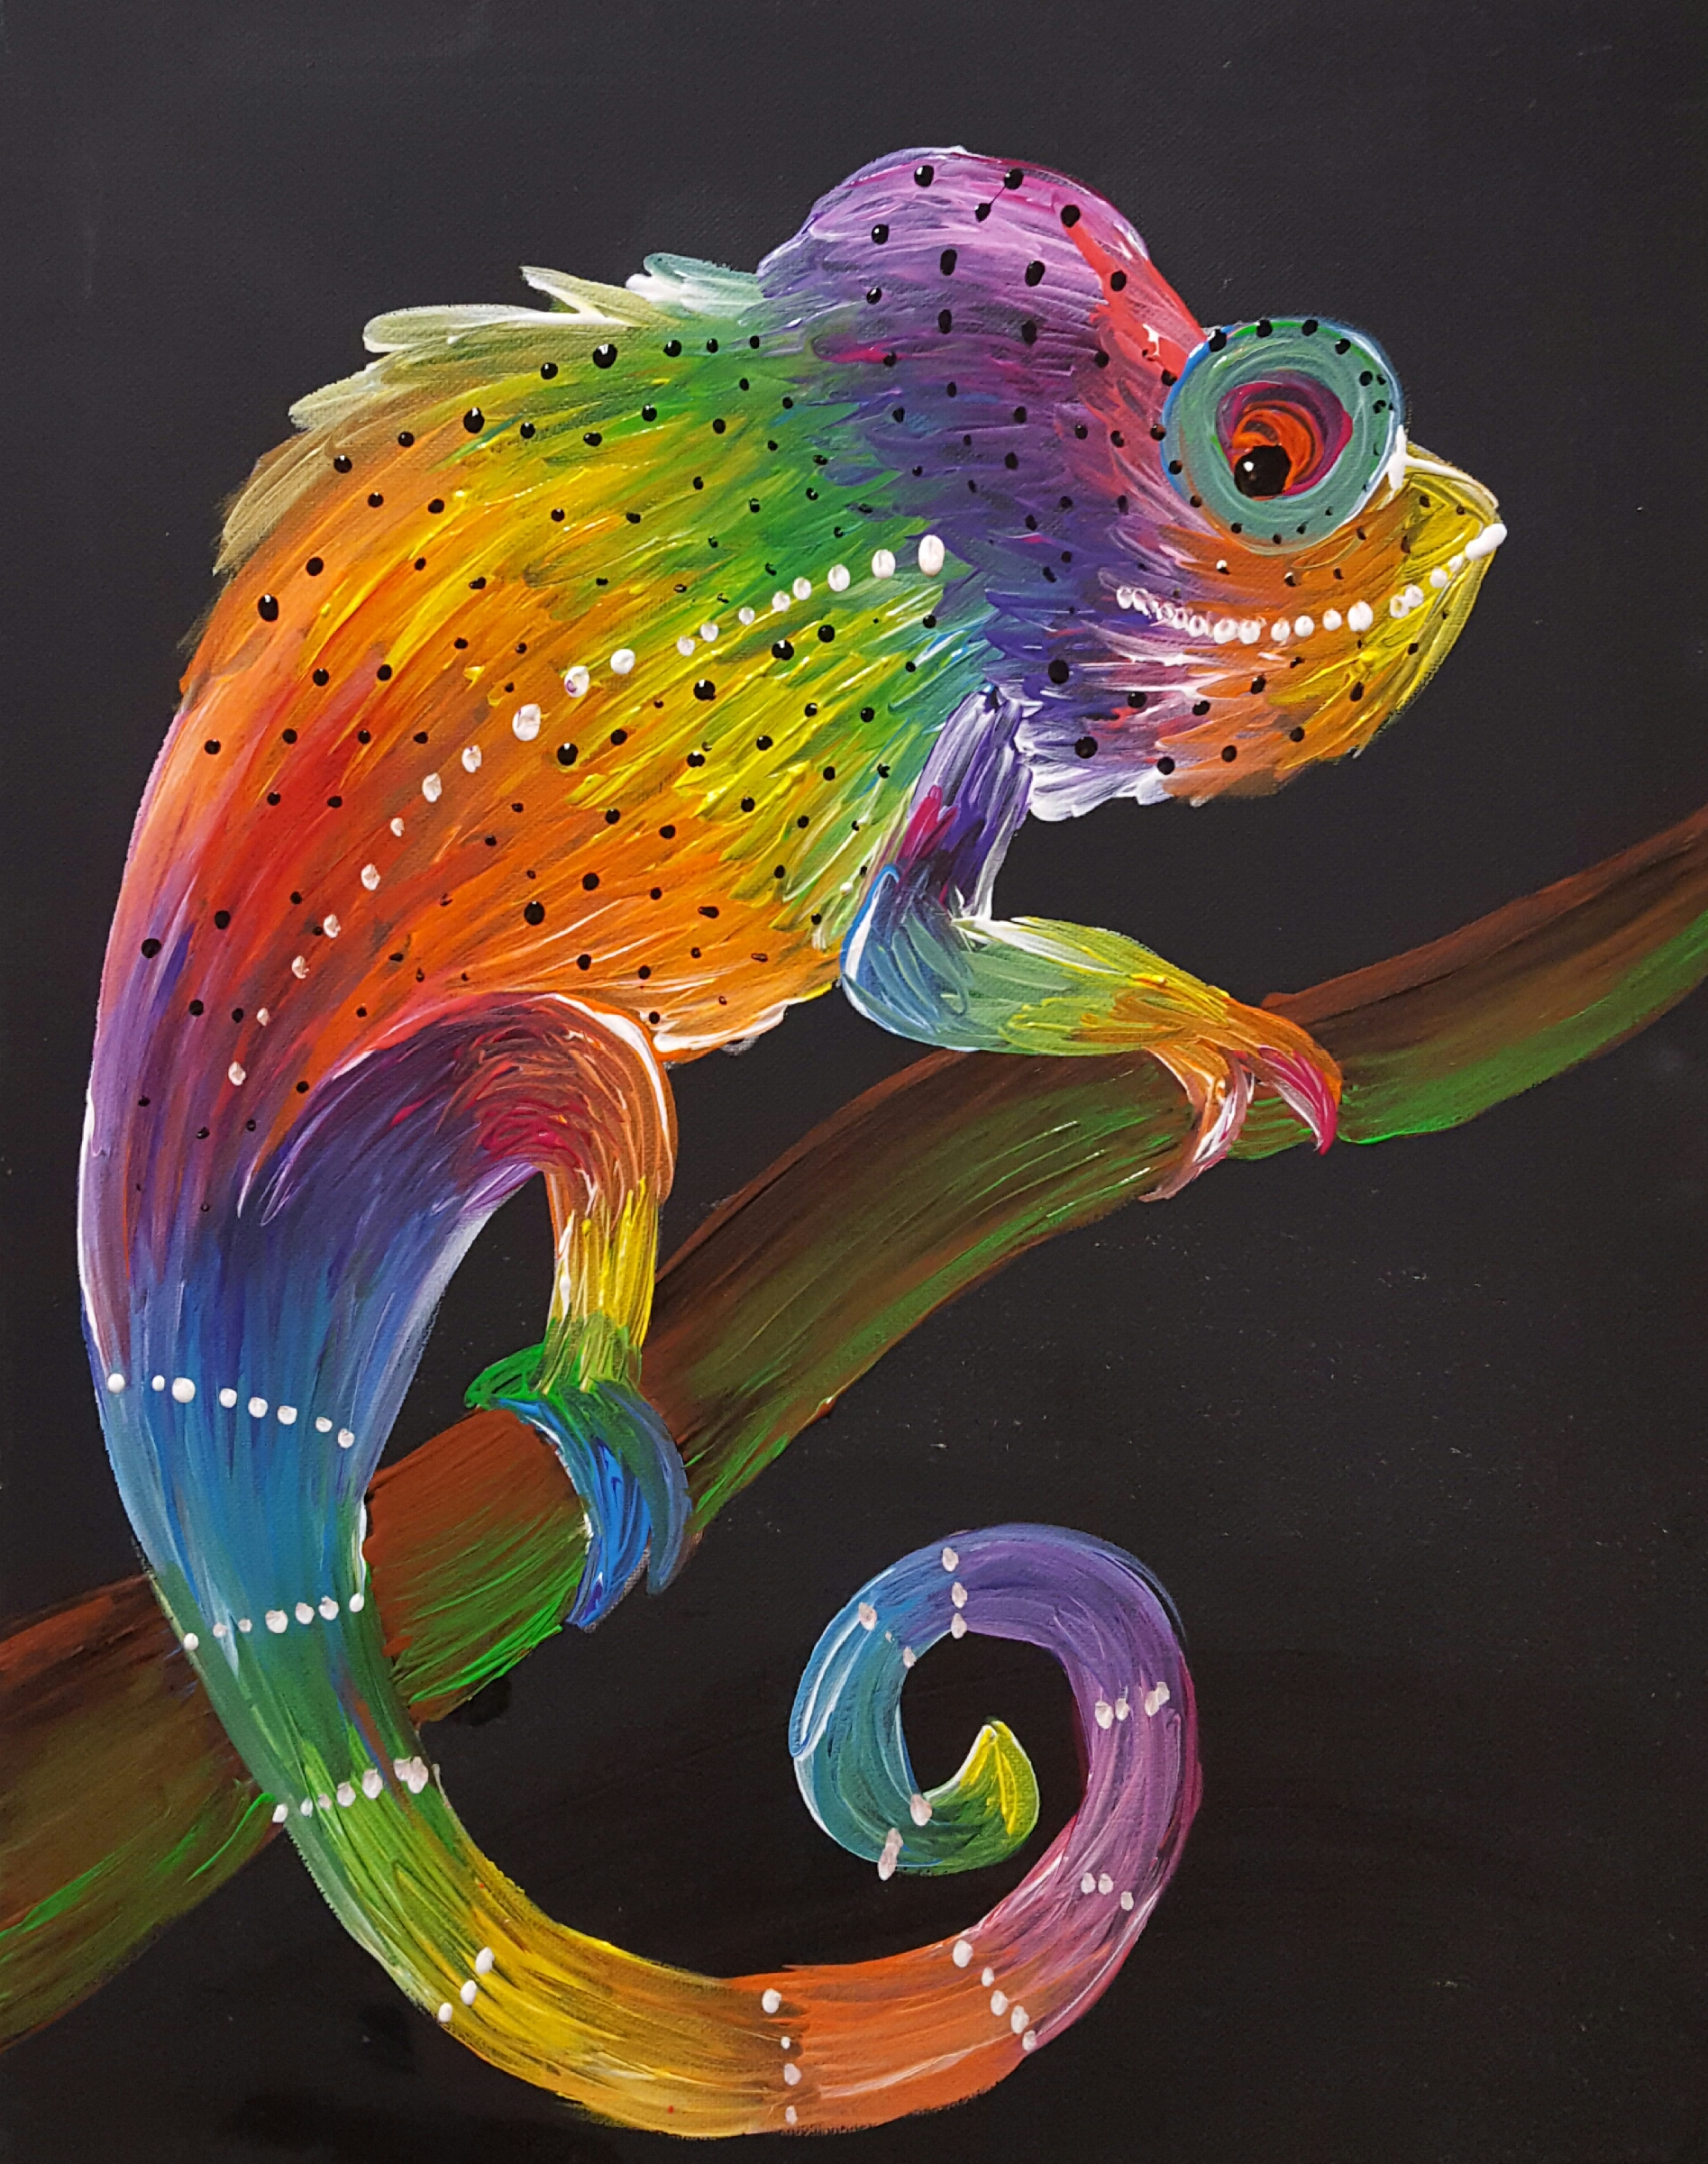 Chameleon- (8 years old and up) 2 hours